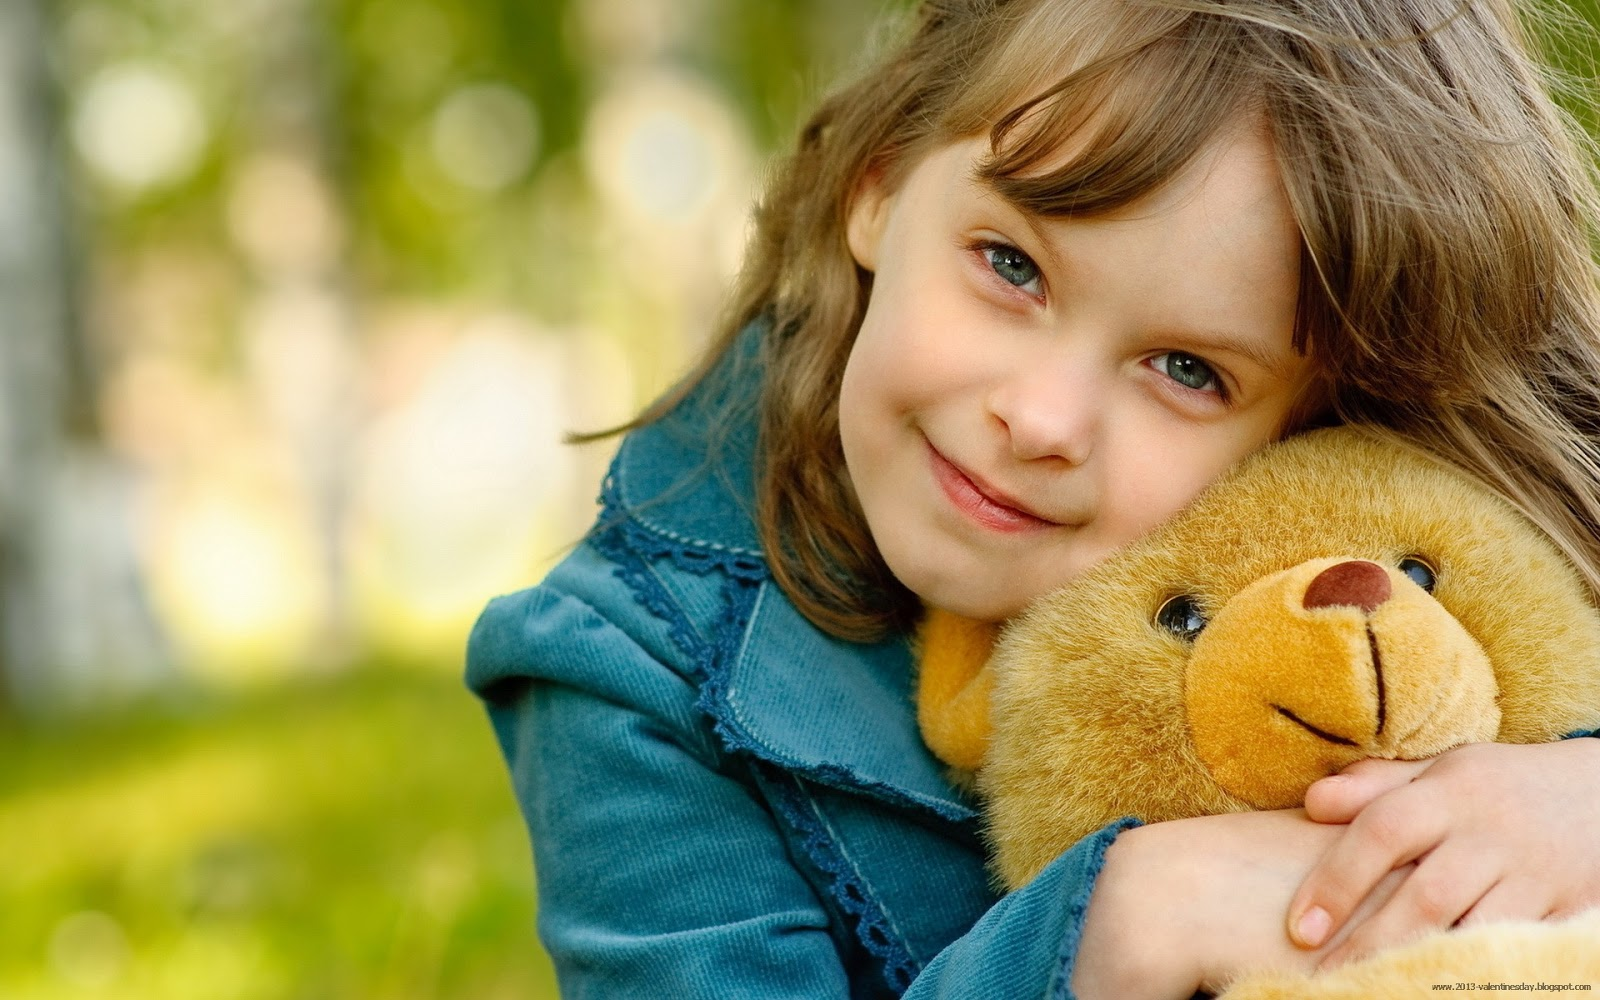 Download Cute Girl With Teddy Bear Wallpaper | Full HD Wallpapers